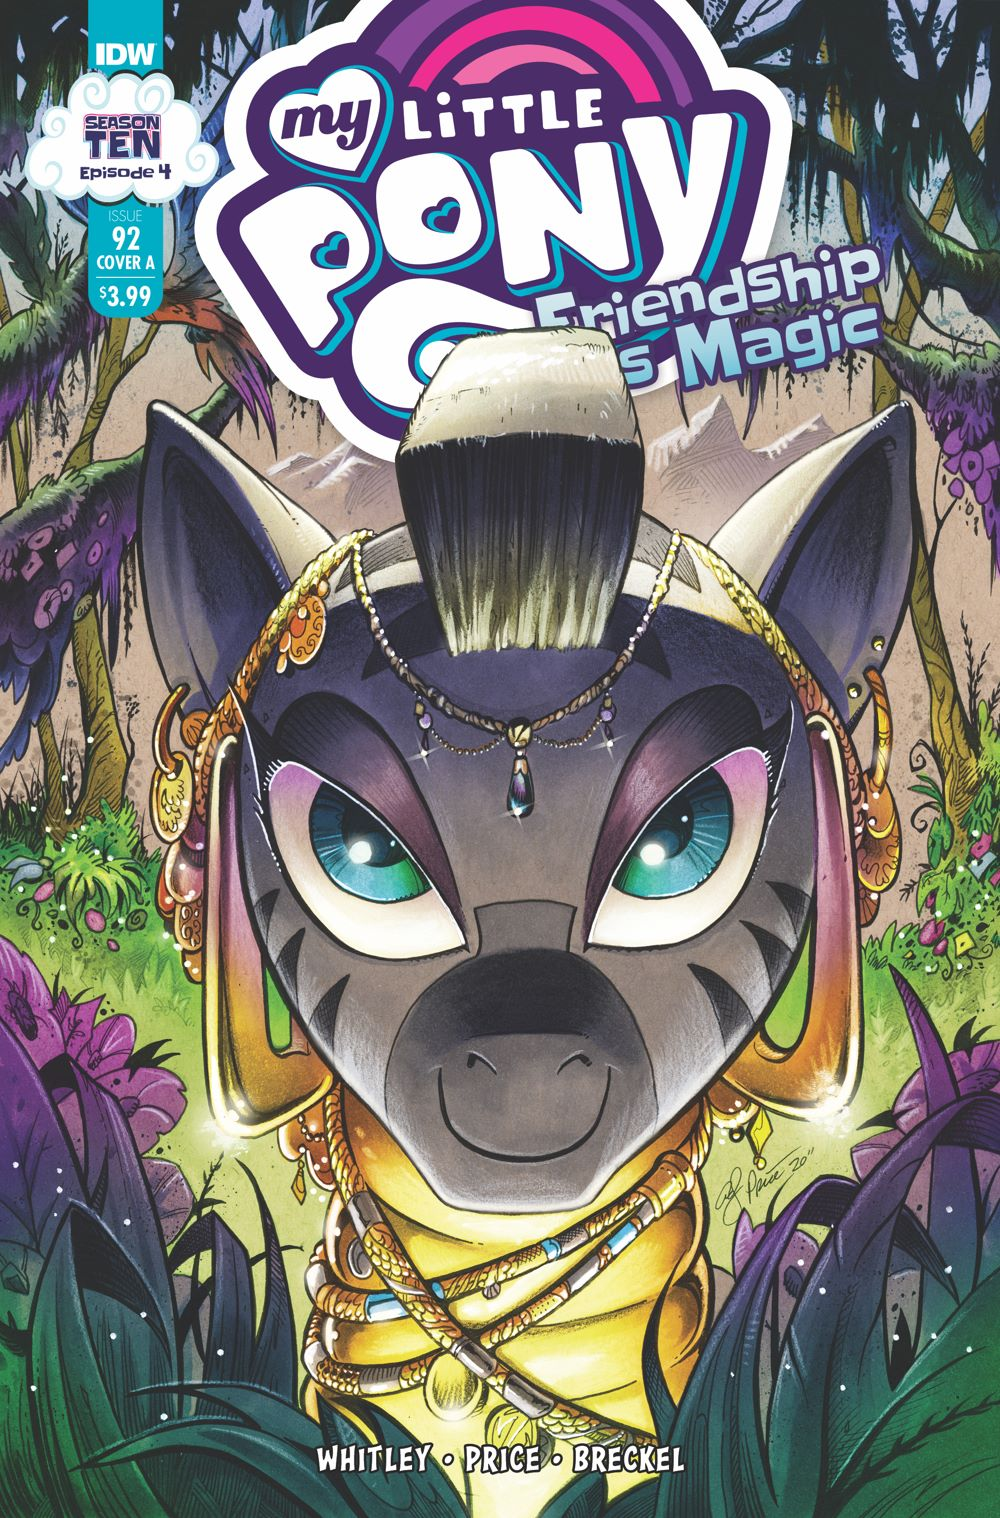 MLP92_04-coverA ComicList Previews: MY LITTLE PONY FRIENDSHIP IS MAGIC #92